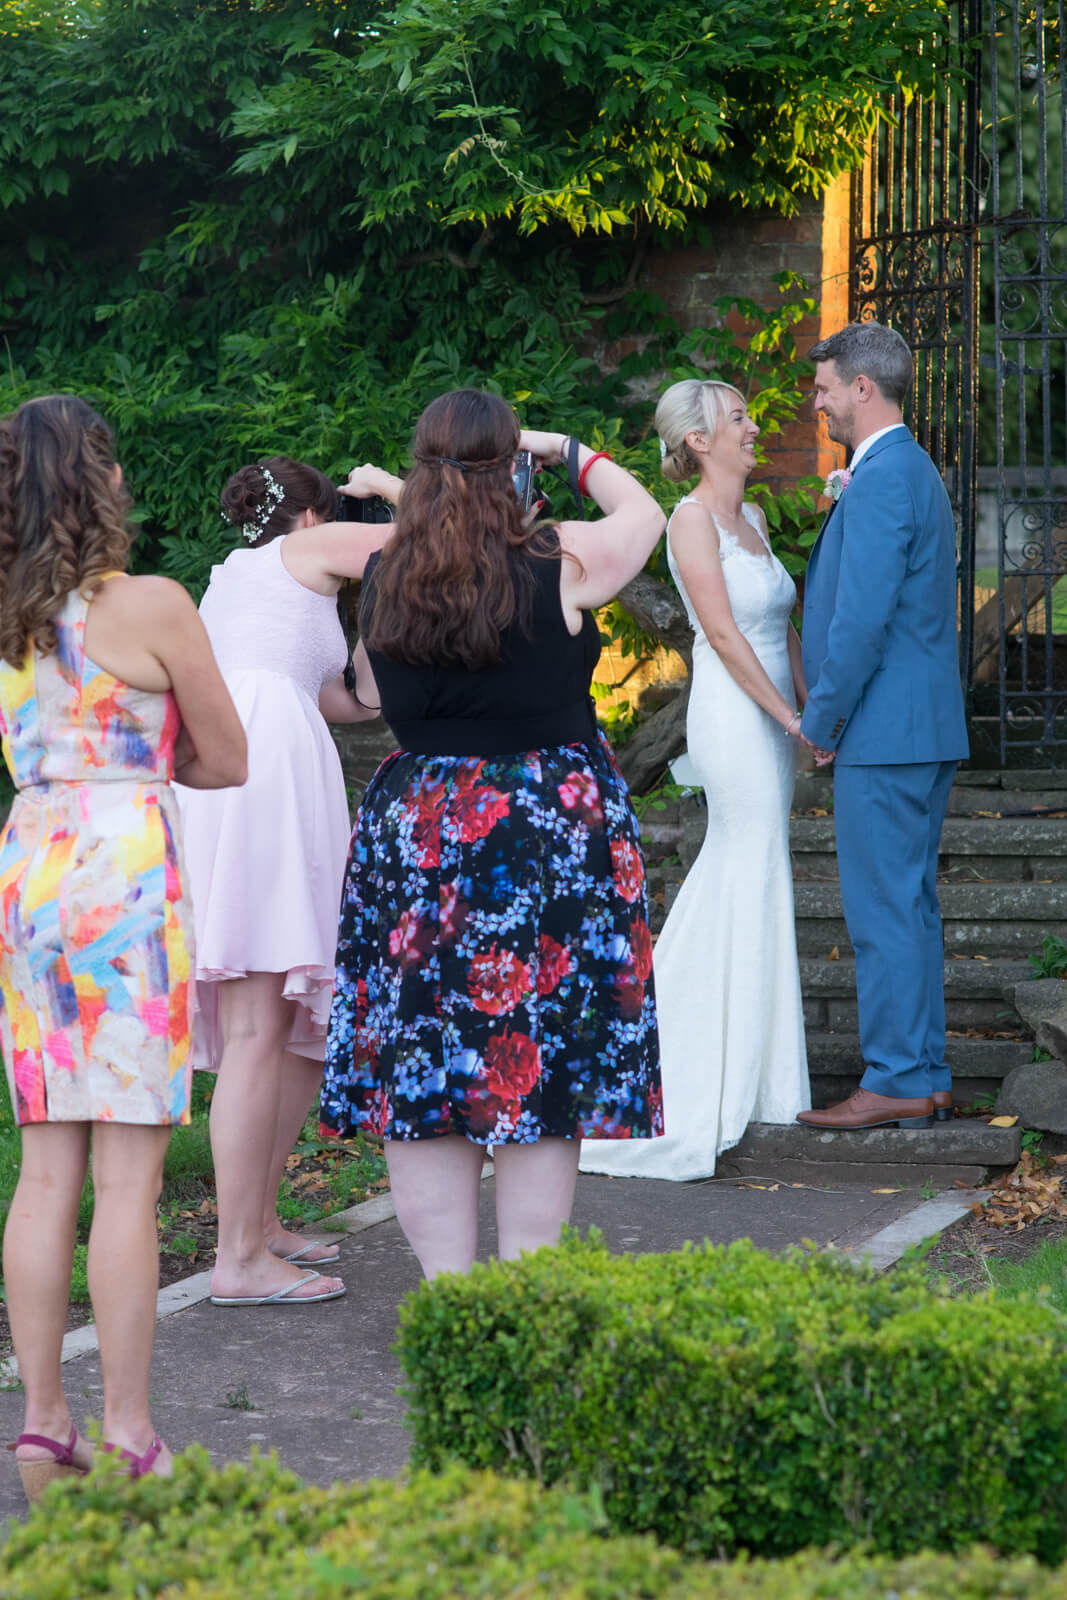 Guests take pictures of the newlyweds